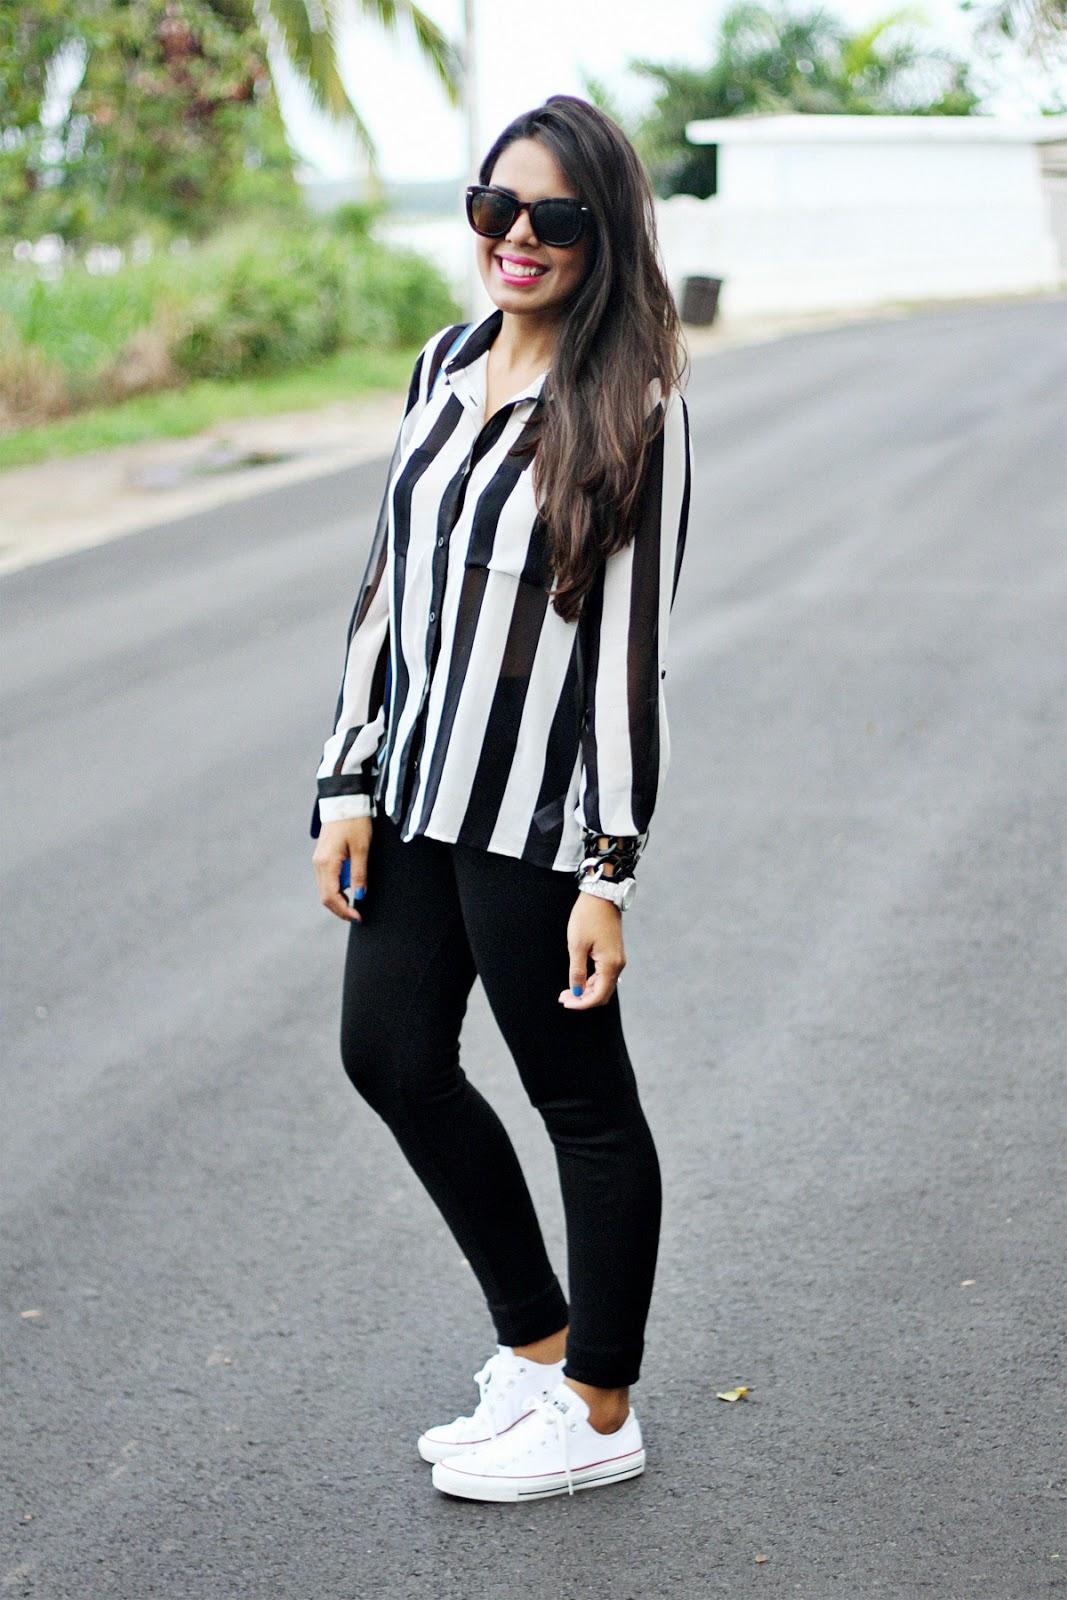 Le Meilleur How To Wear Leggings With White Converse Melonkiss Ce Mois Ci